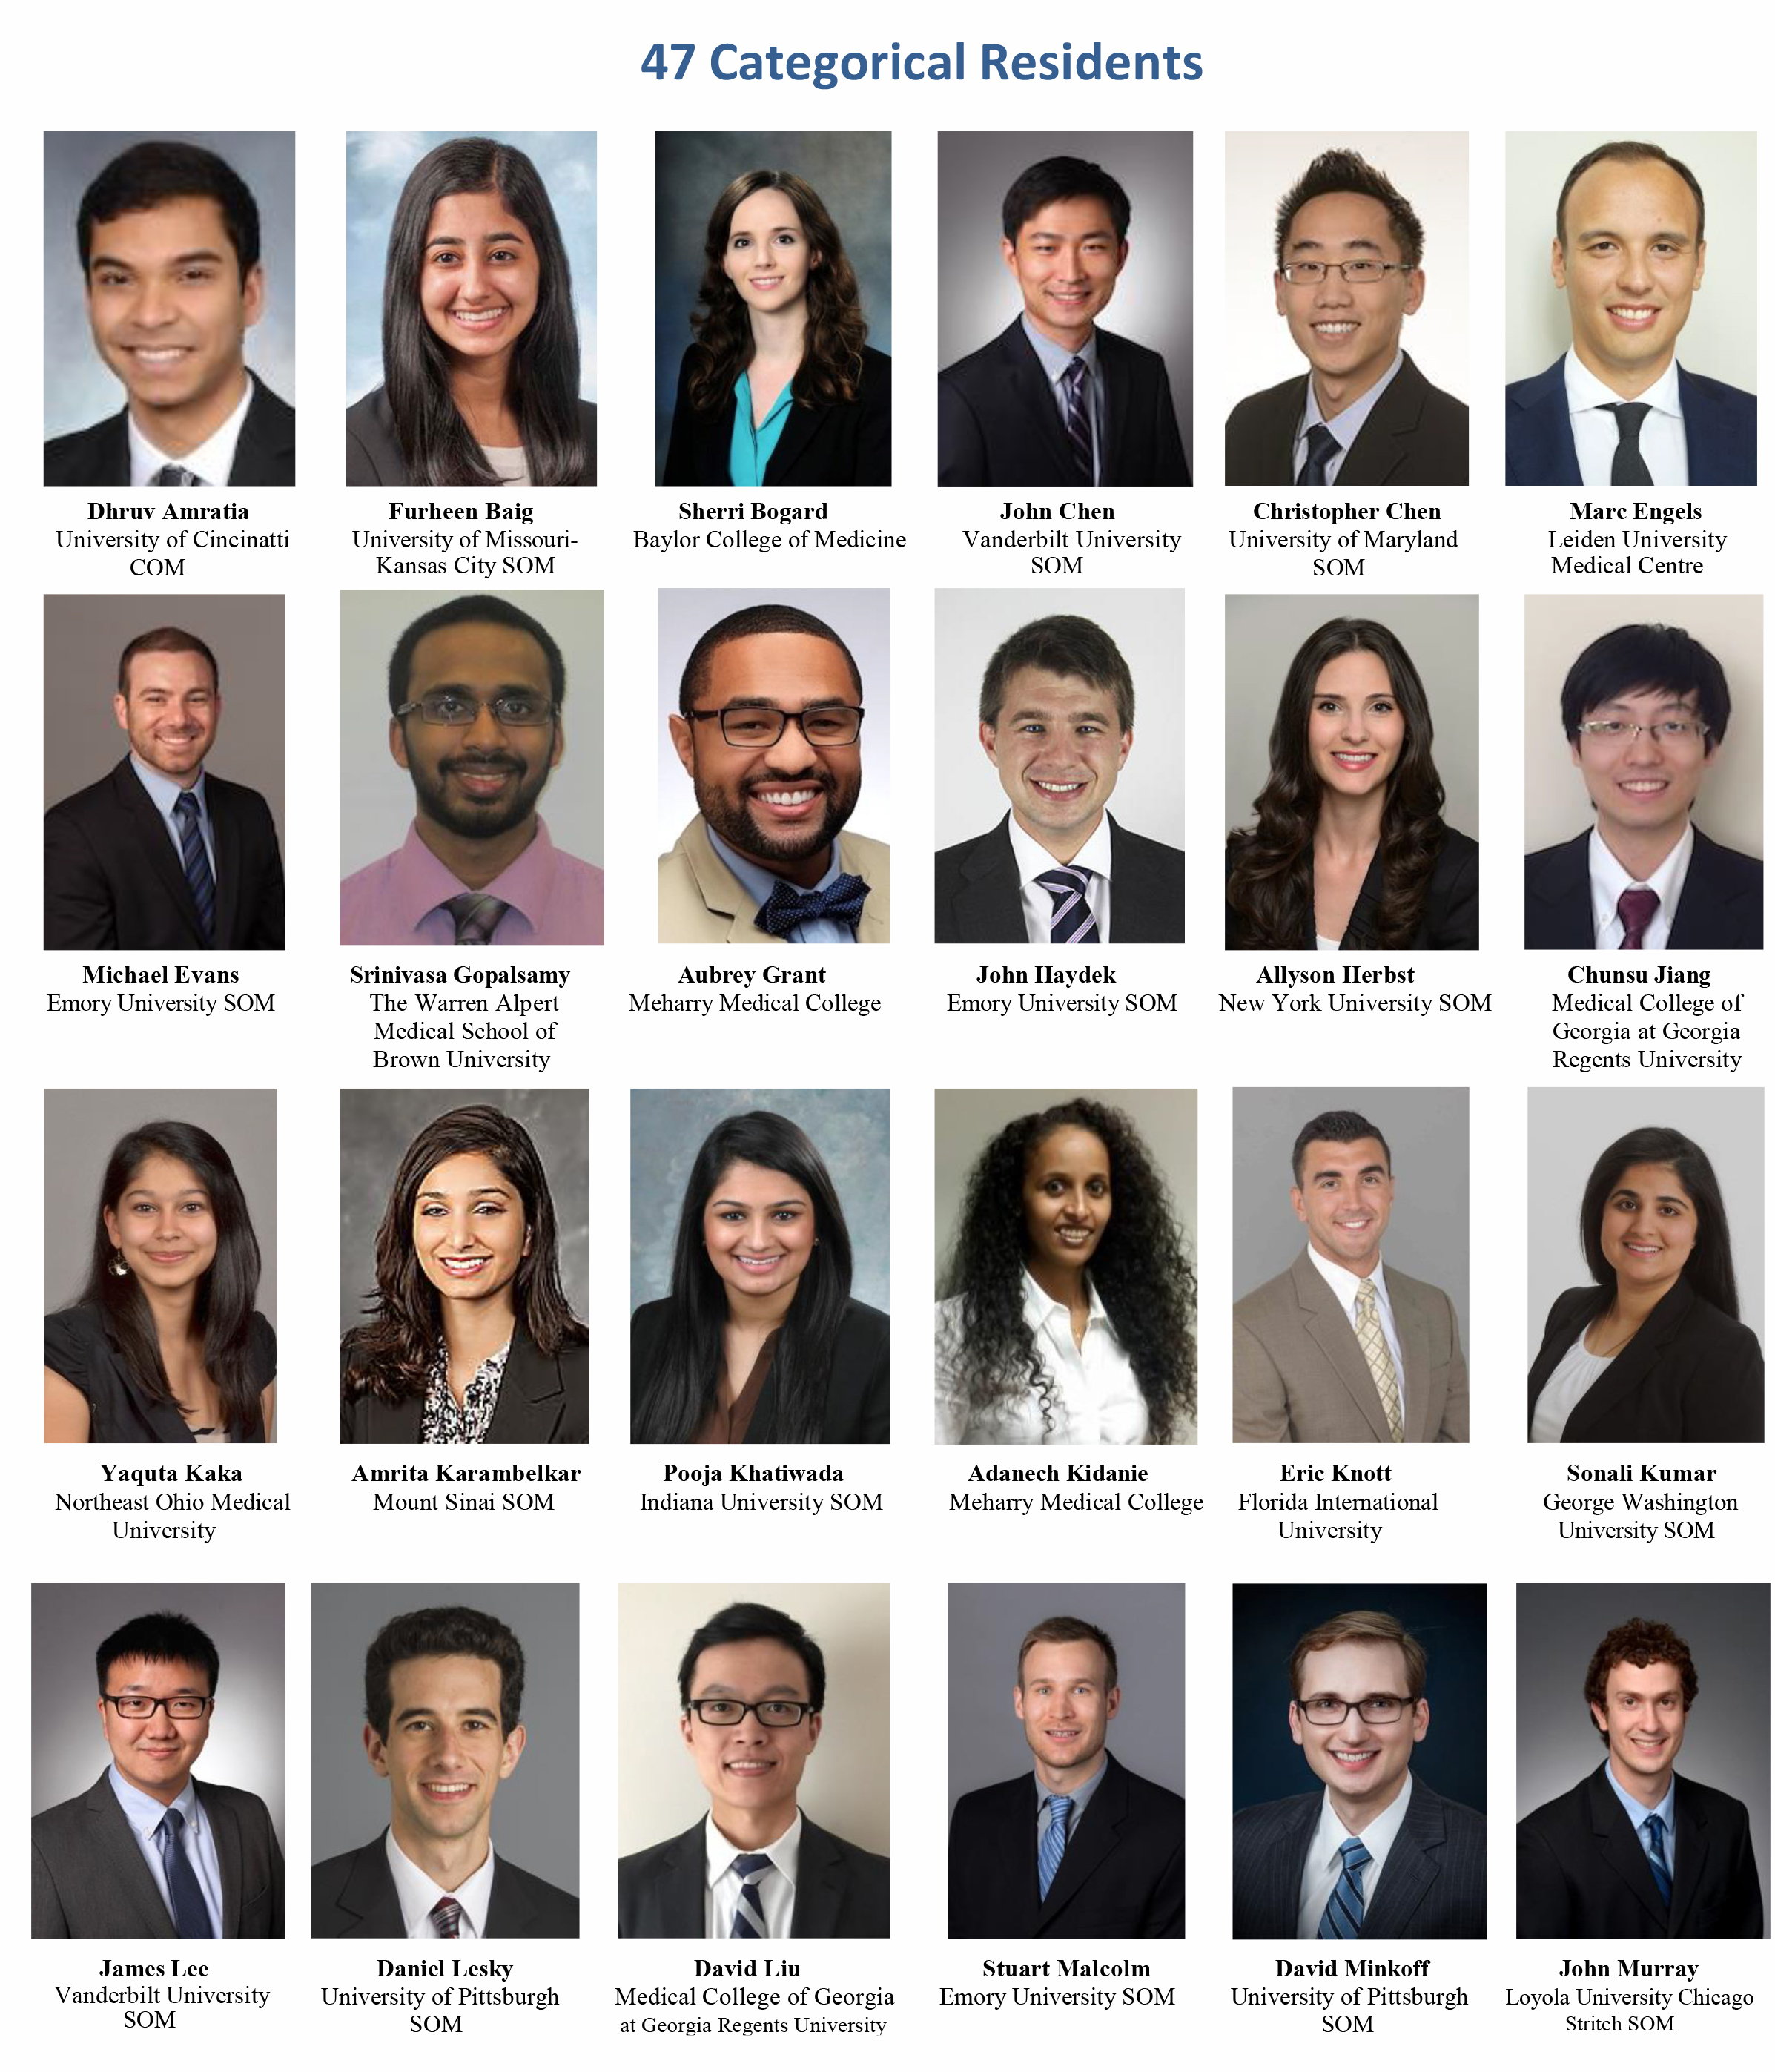 Please welcome our 2016 incoming residents - Emory Daily Pulse